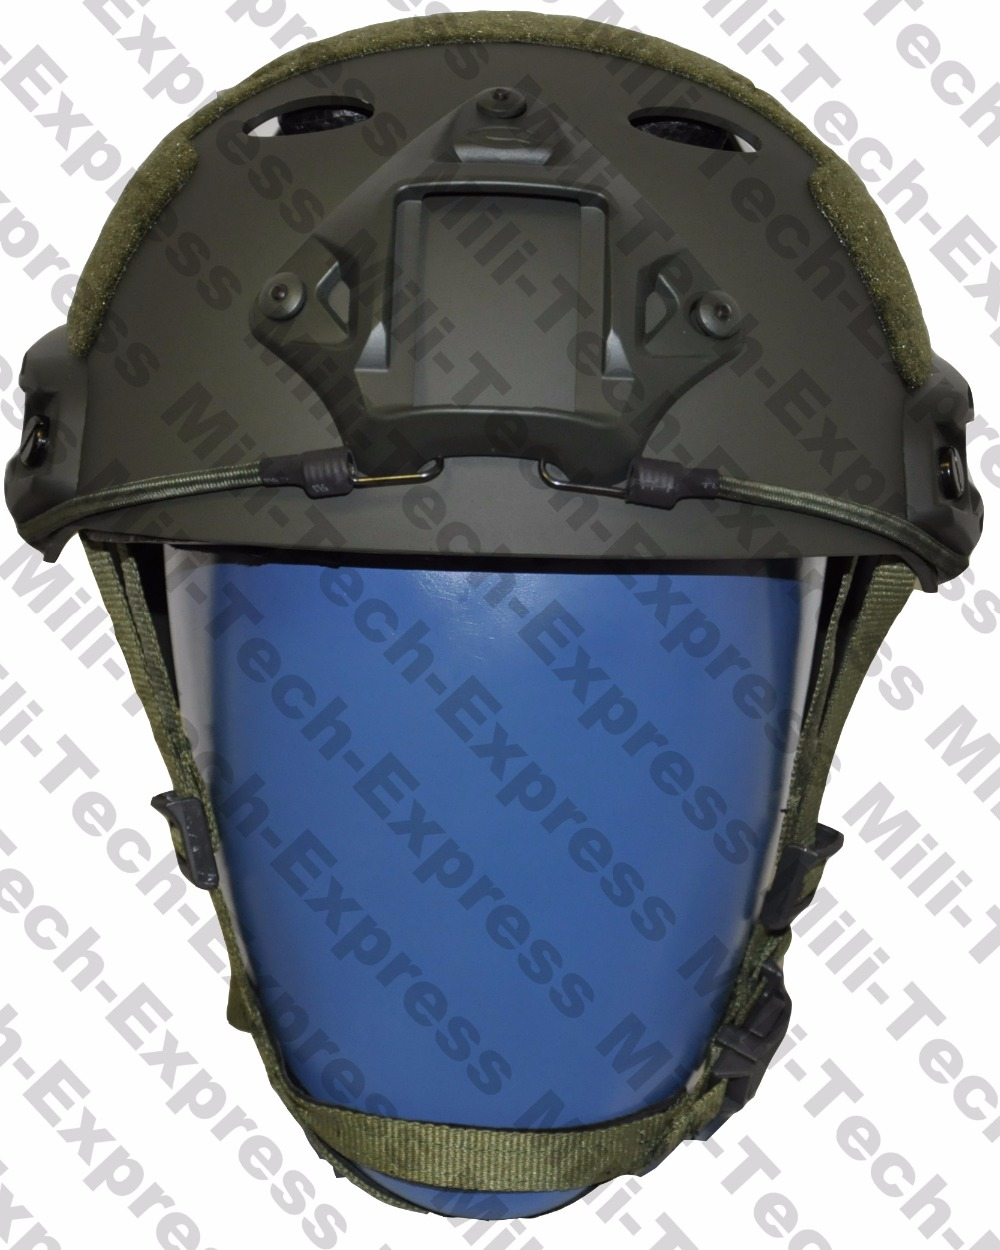 MILITECH FAST OD PJ Carbon Style Vented Airsoft Tactical Helmet Ops Core Style High Cut Training Helmet Ballistic Style Helmet. fast mc pj carbon style vented airsoft tactical helmet ops core style high cut training helmet fast ballistic style helmet